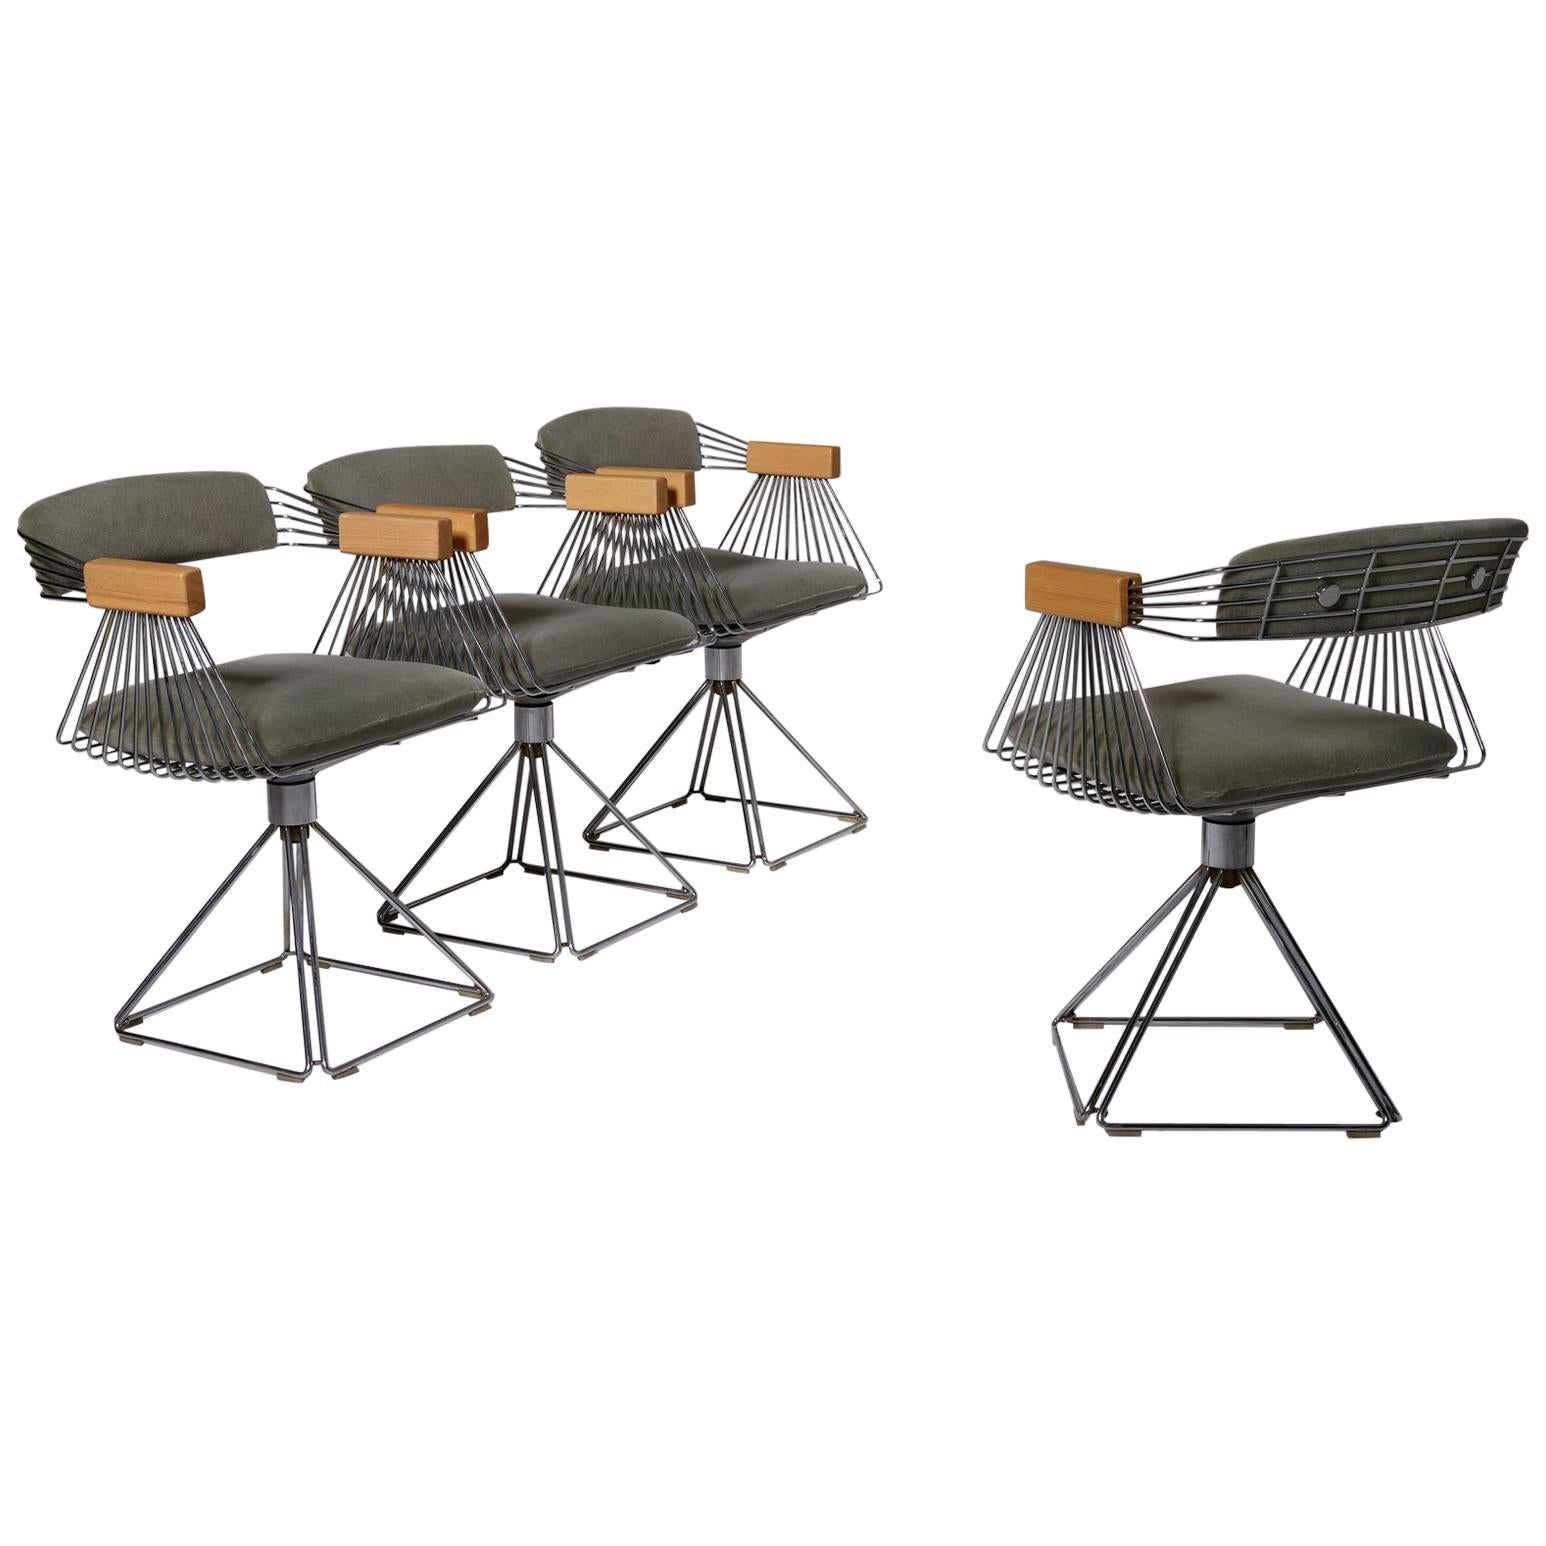 Set of Four 'Delta' Chairs by Rudi Verelst, 1971